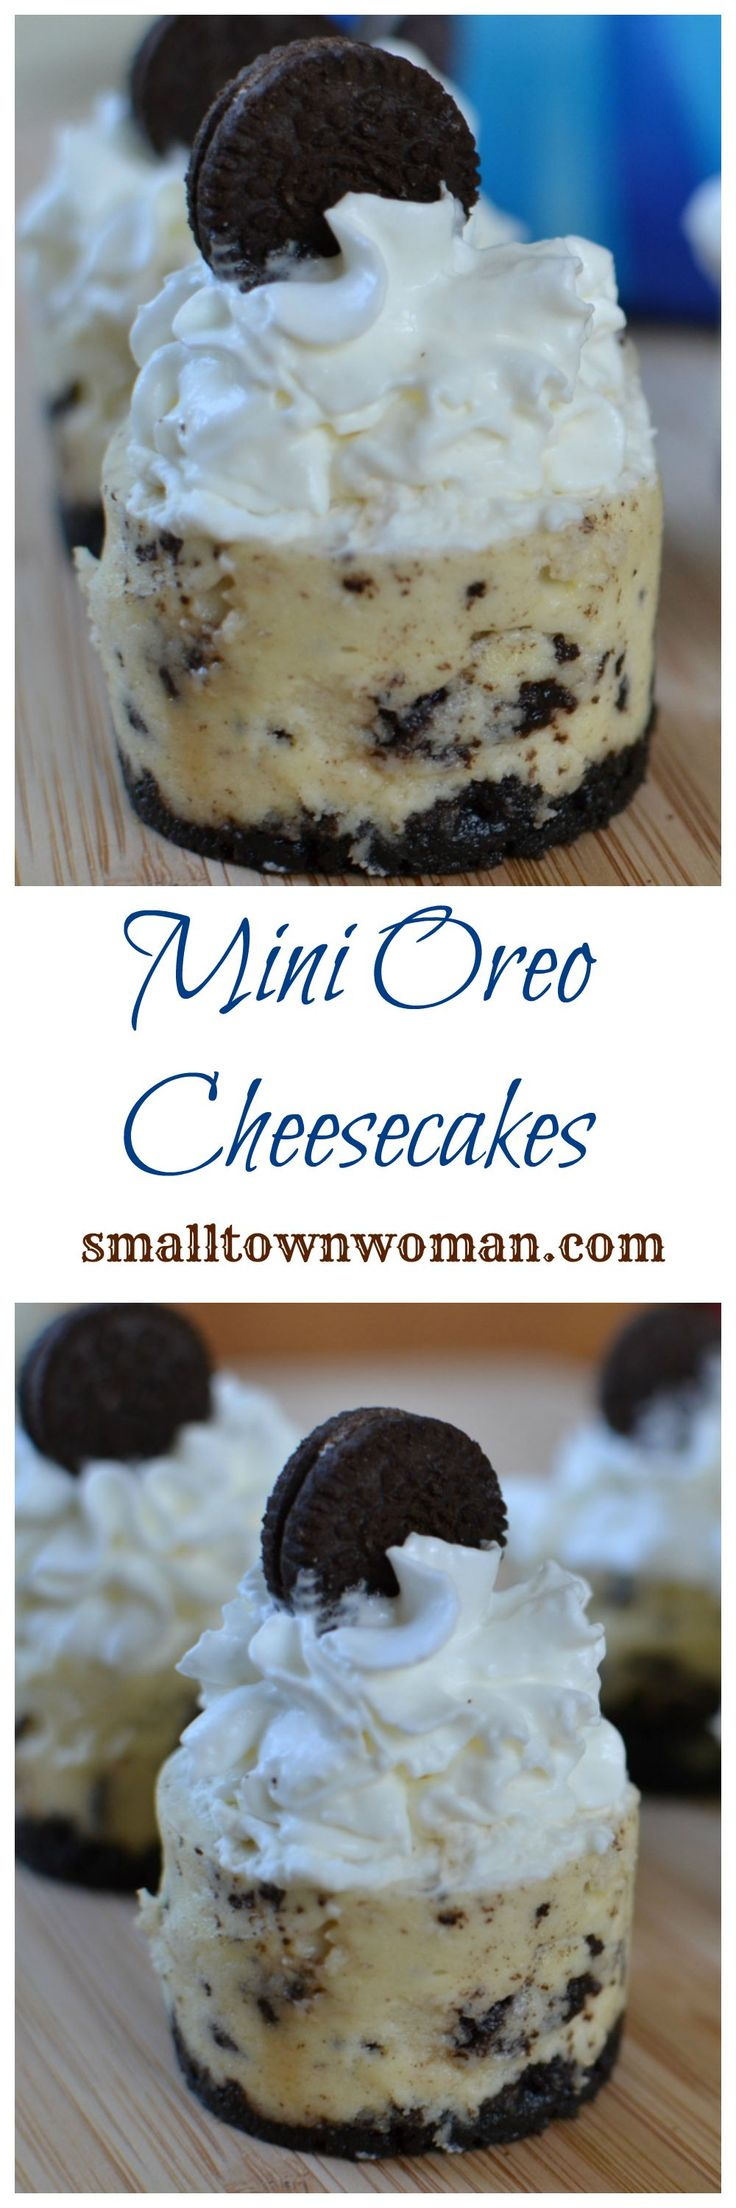 Yummo!  Who could resist a little sweet treat?  Especially when it is Oreo related!